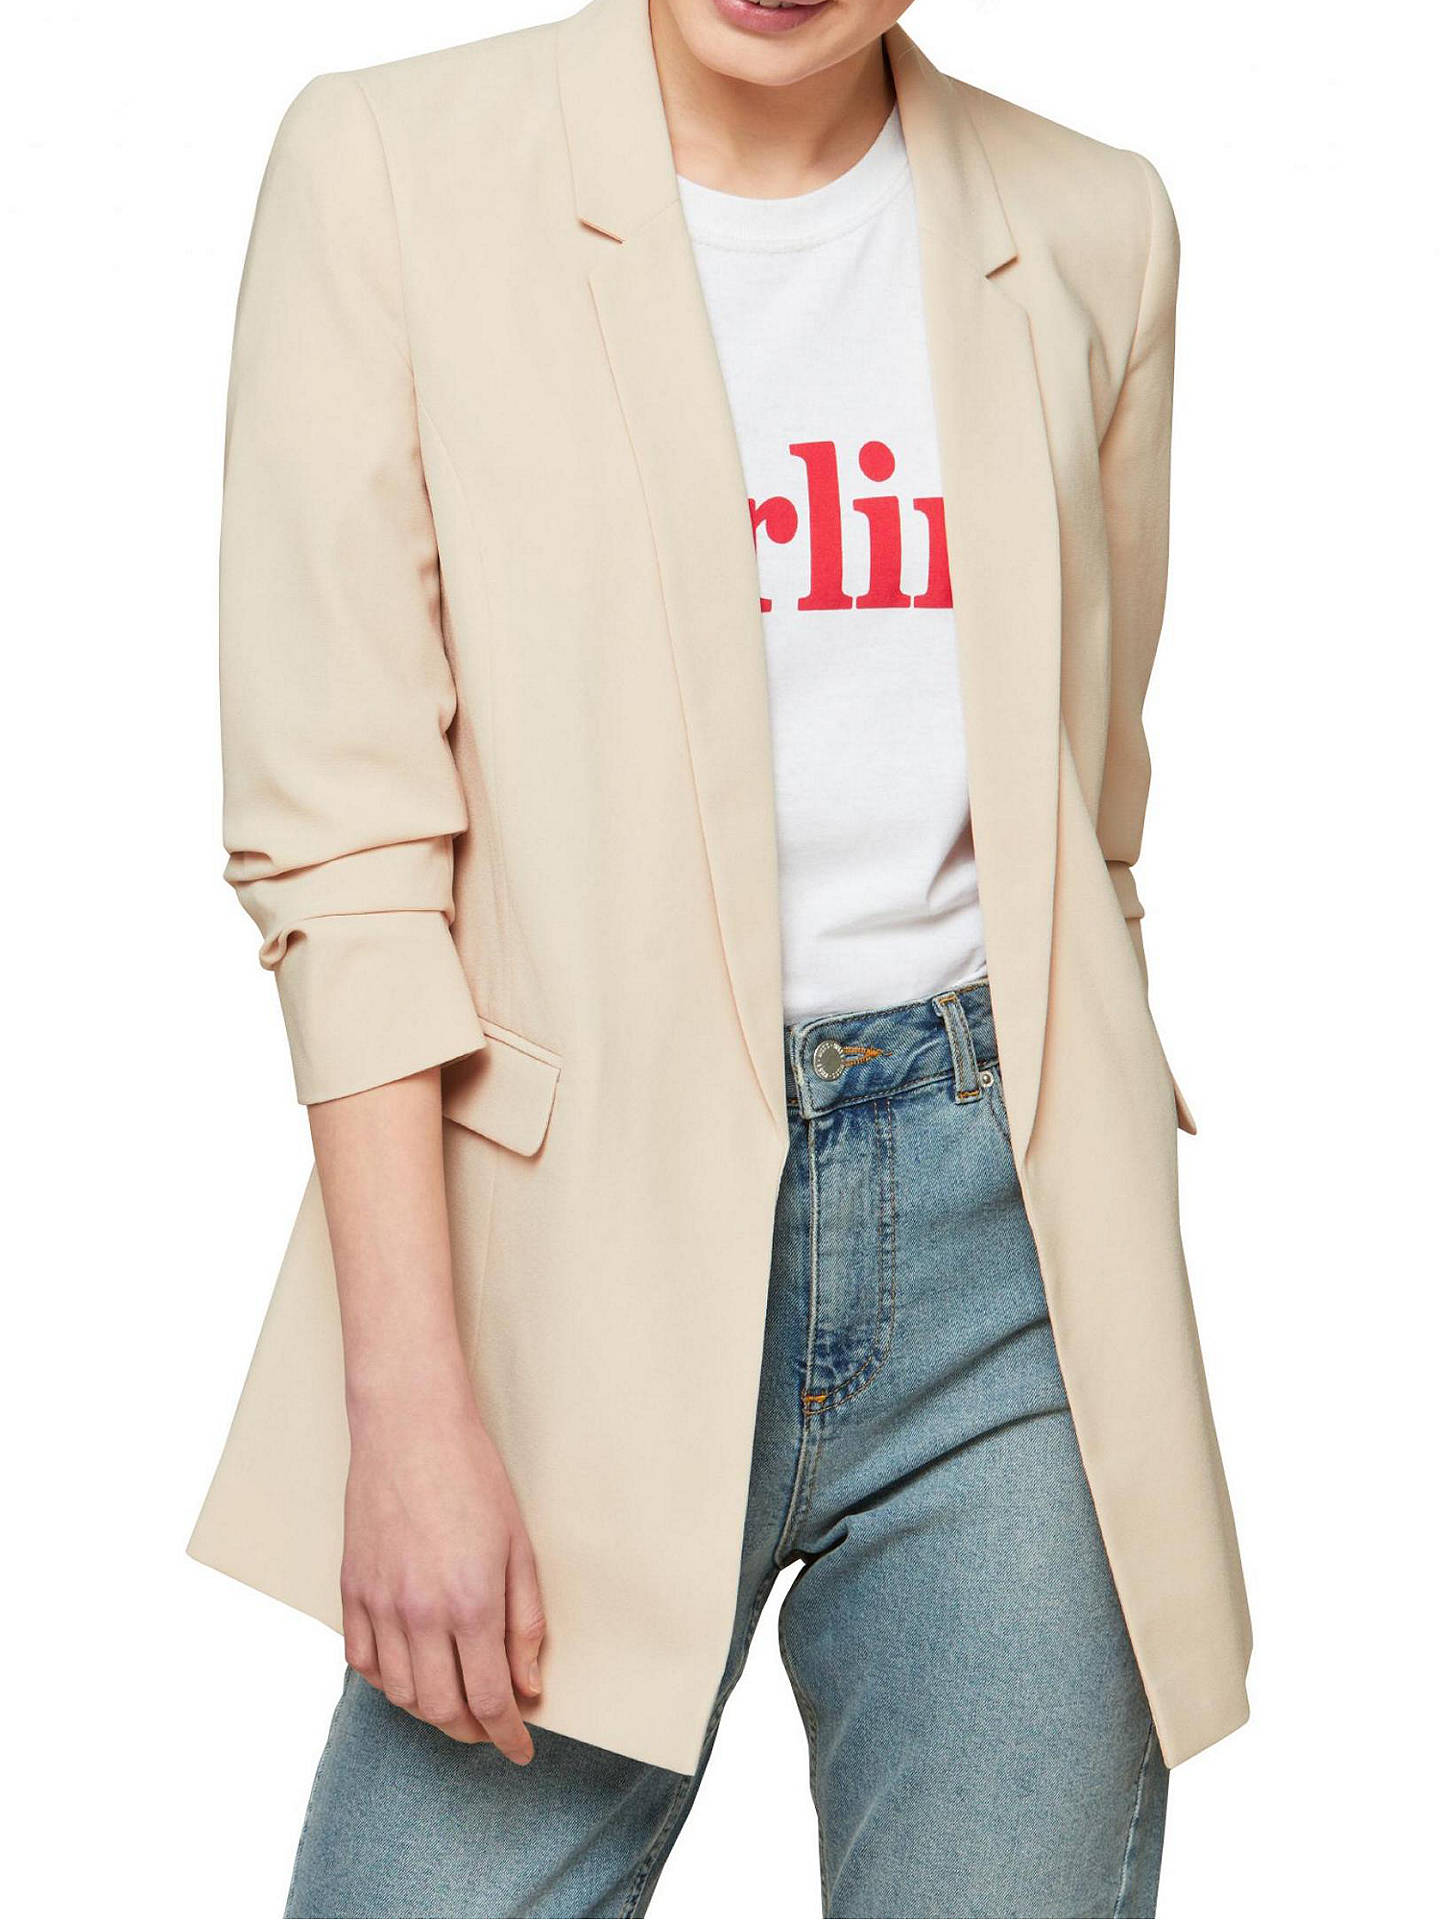 Miss Selfridge Ruched Sleeve Blazer at John Lewis & Partners